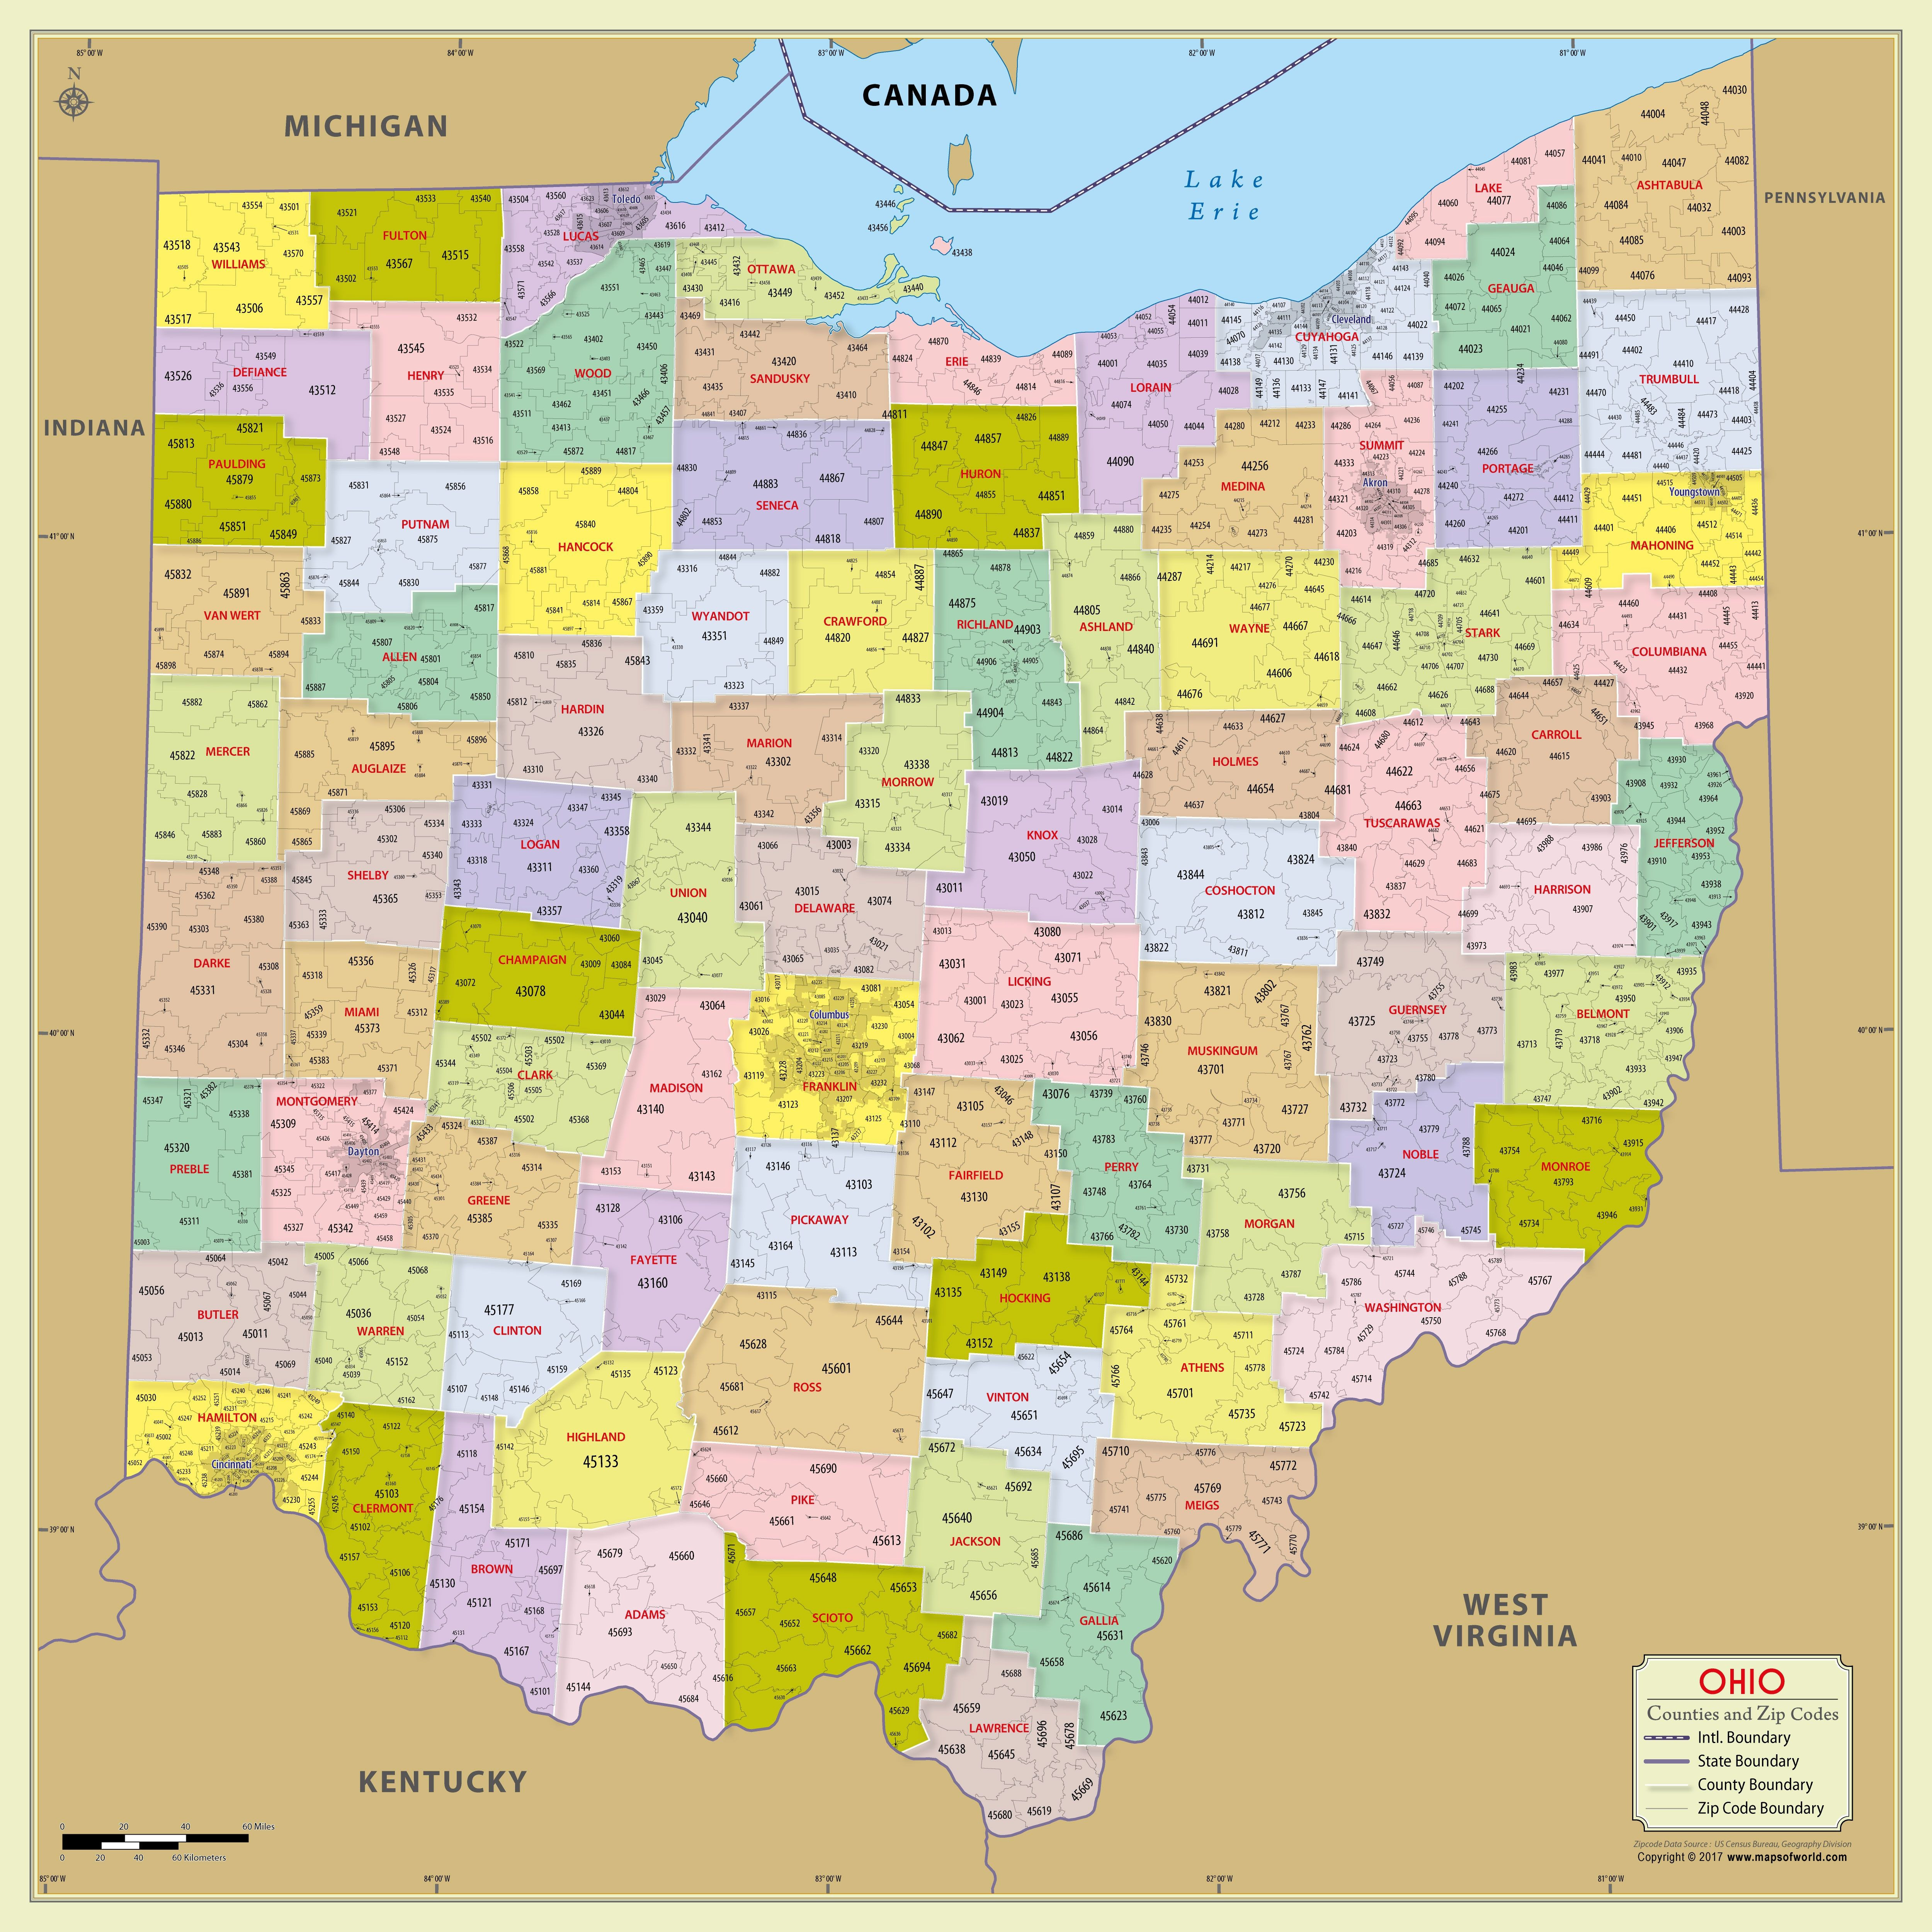 Printable Zip Code Map Inspirational Zip Code Map United States Refrence Buy Ohio Zip Code Map With